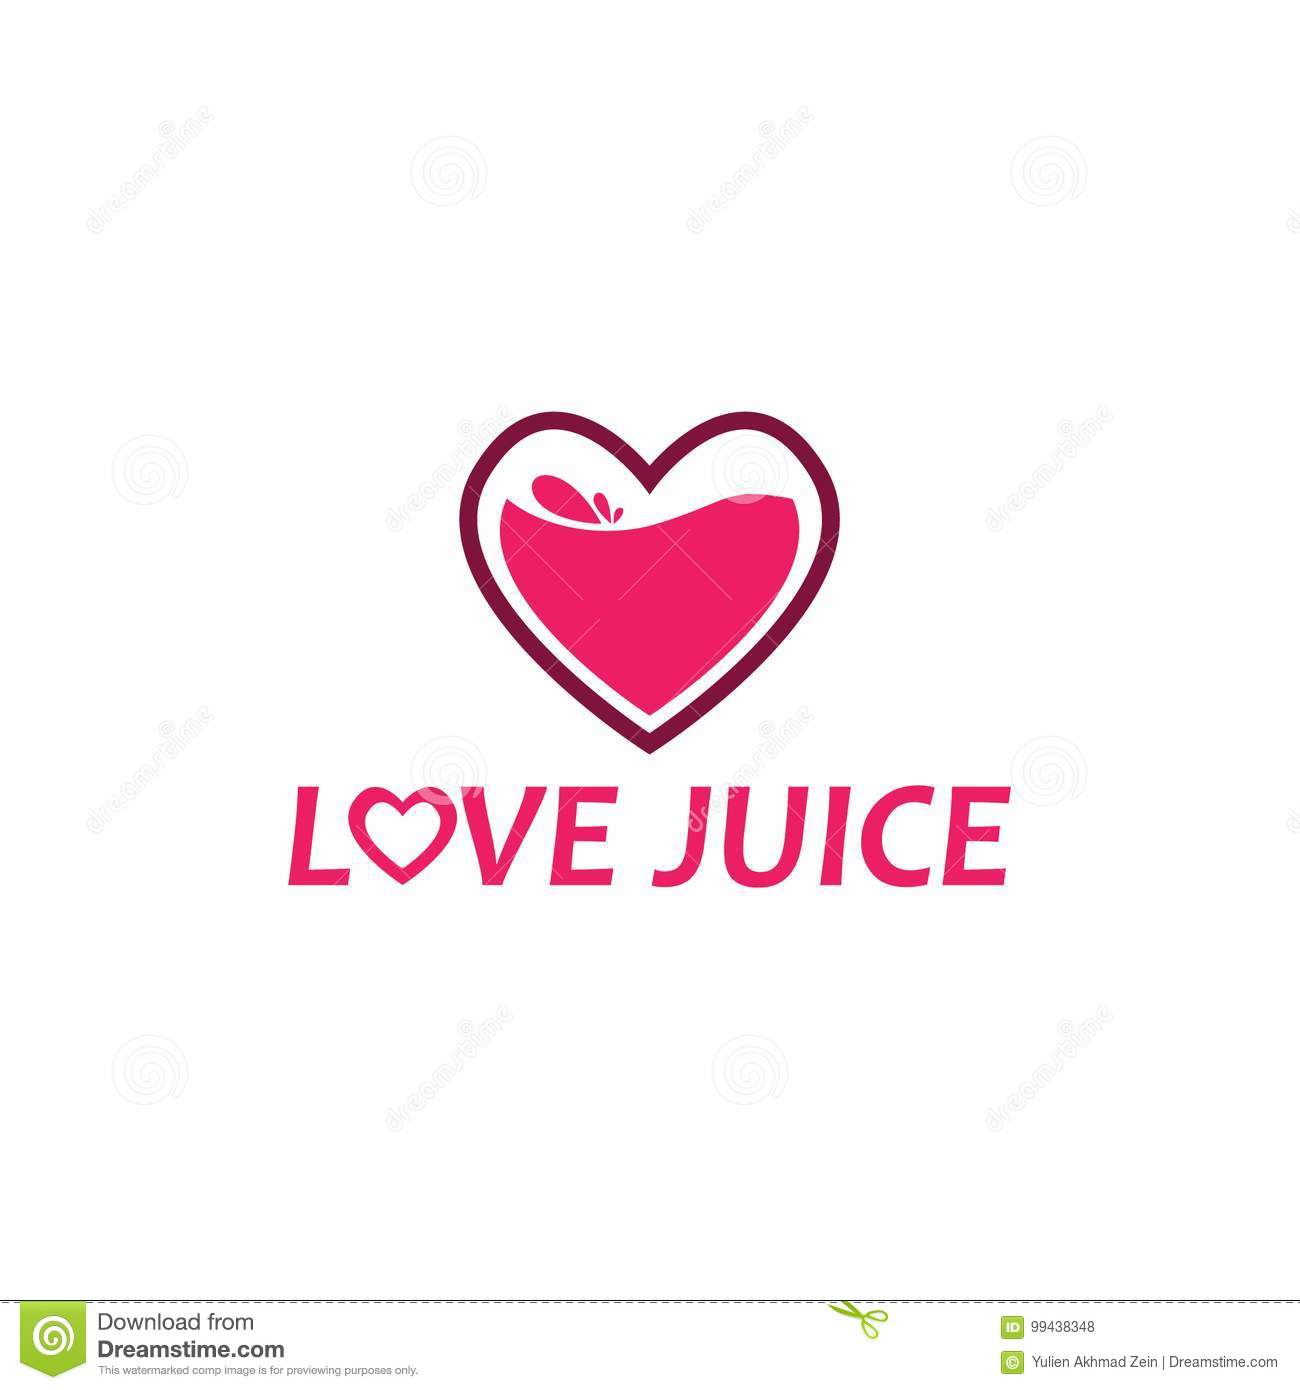 Love juice with sexual